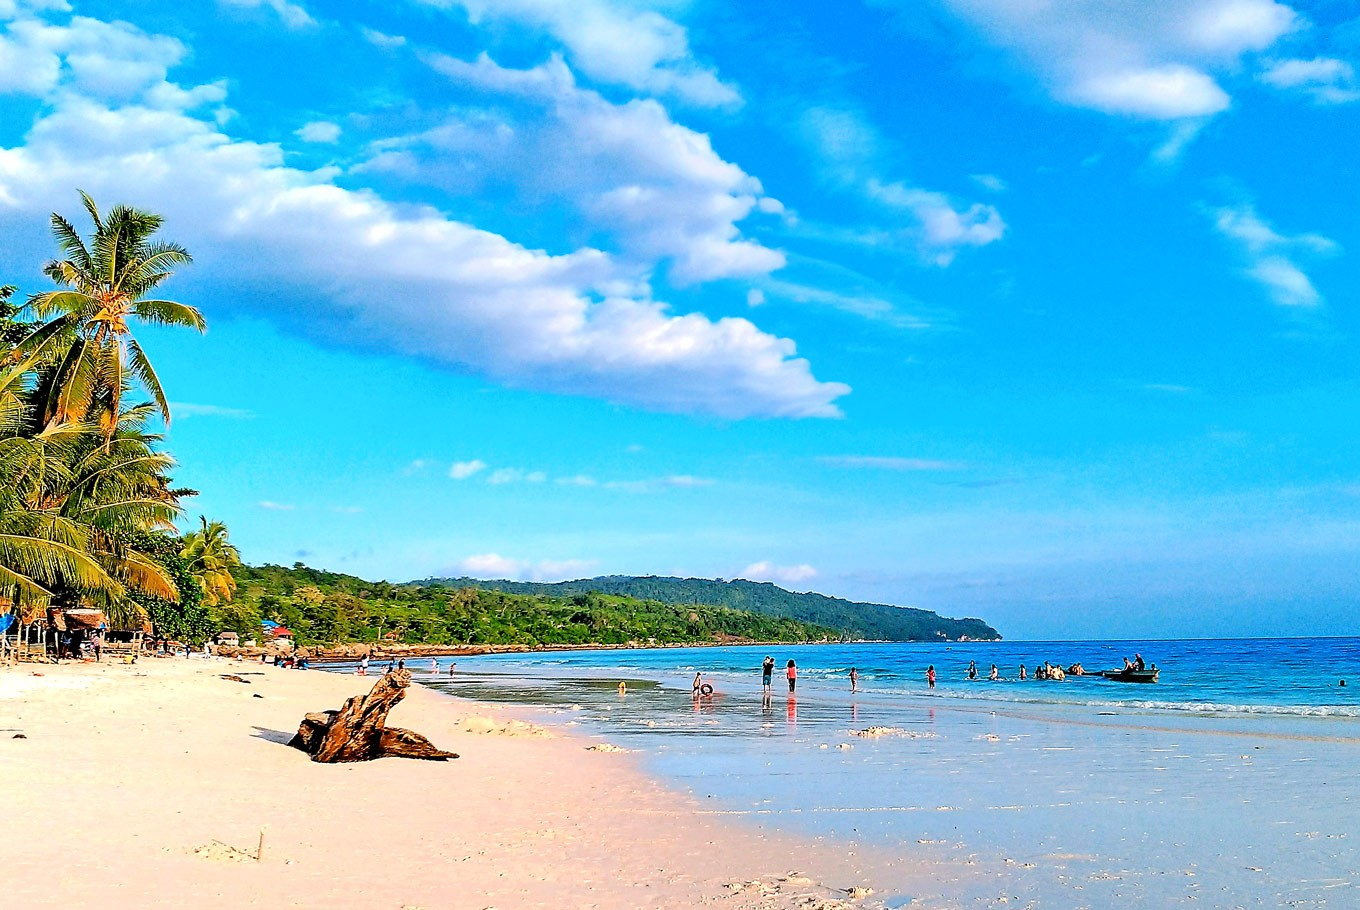 Buton Island: A gem of fascinating tales